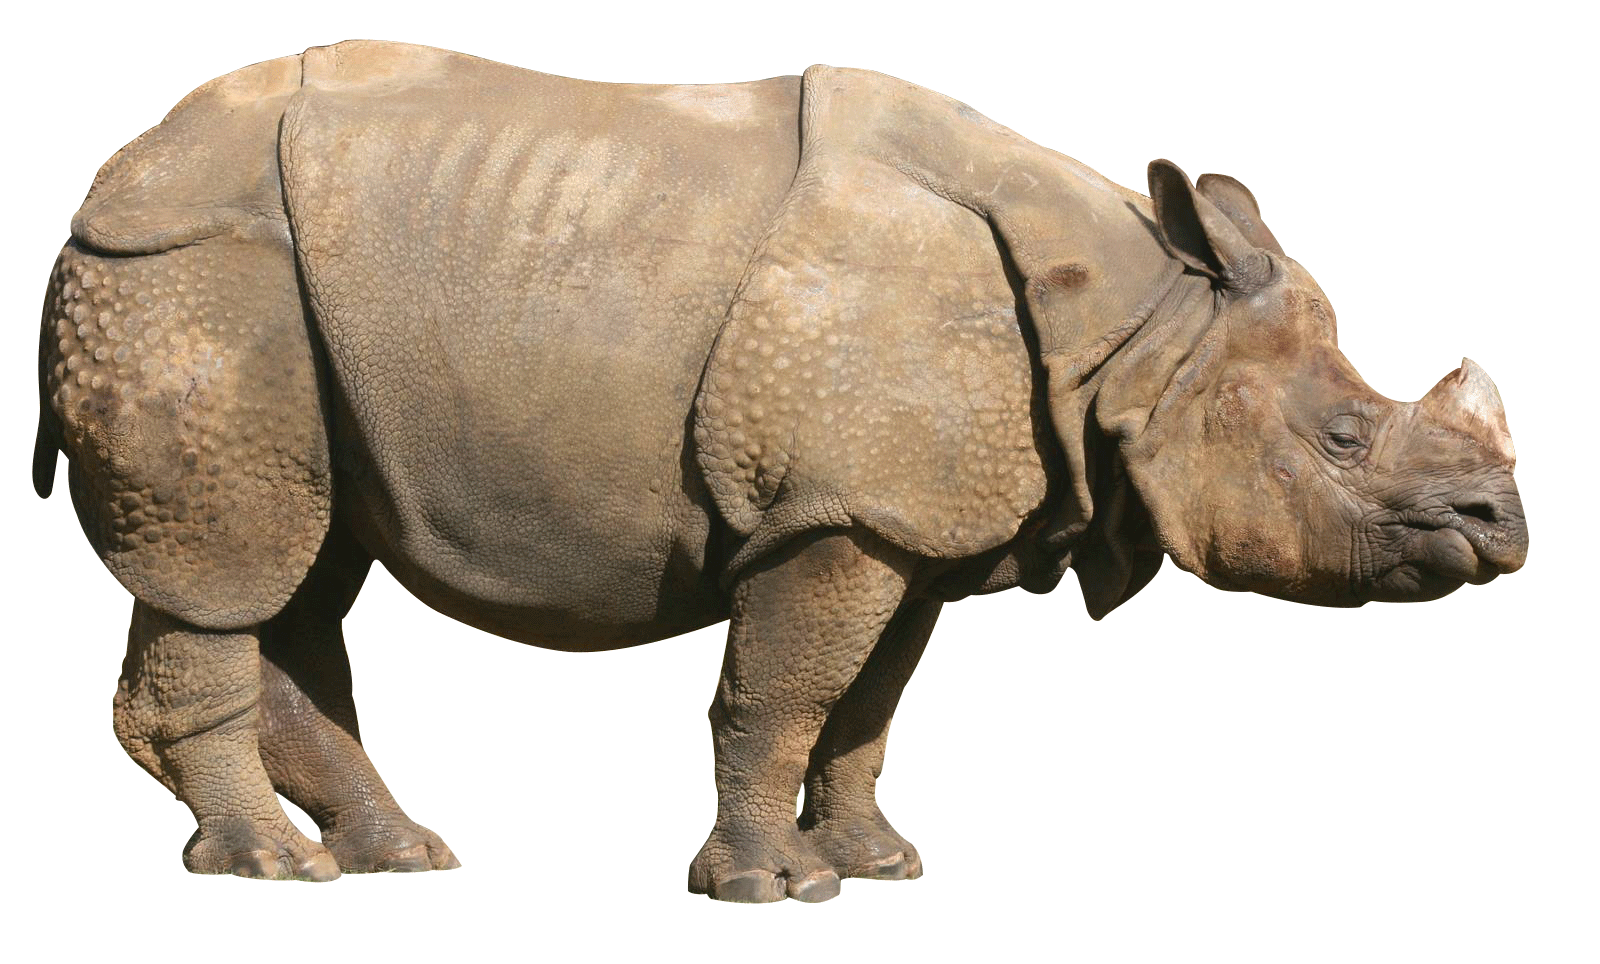 Download · animals · rhinoceros - Rhinoceros PNG